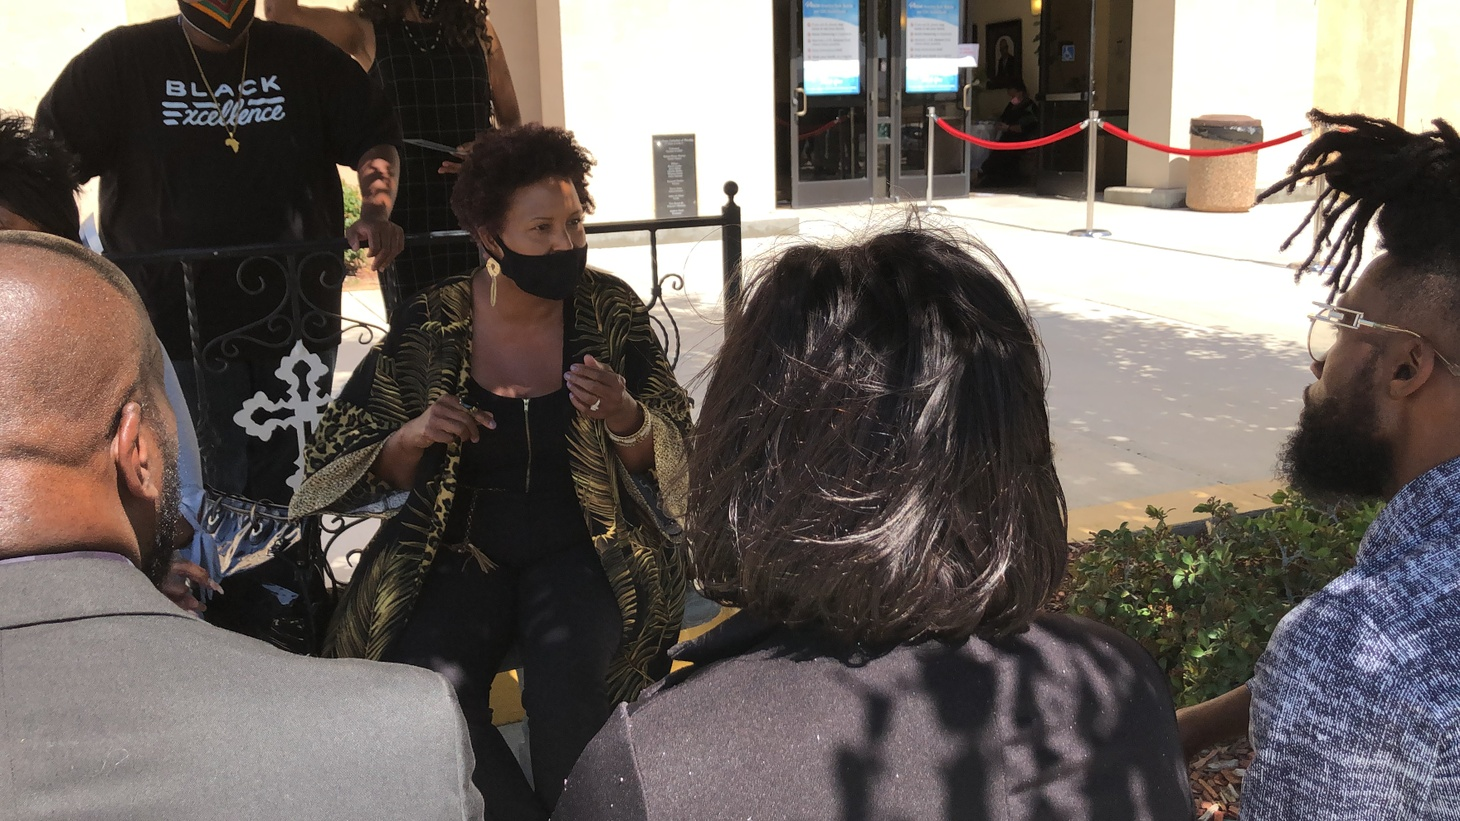 Lisa Brown led a discussion on Black liberation outside the wake of Robert Fuller, 24, who was found hanging from a tree in Palmdale.